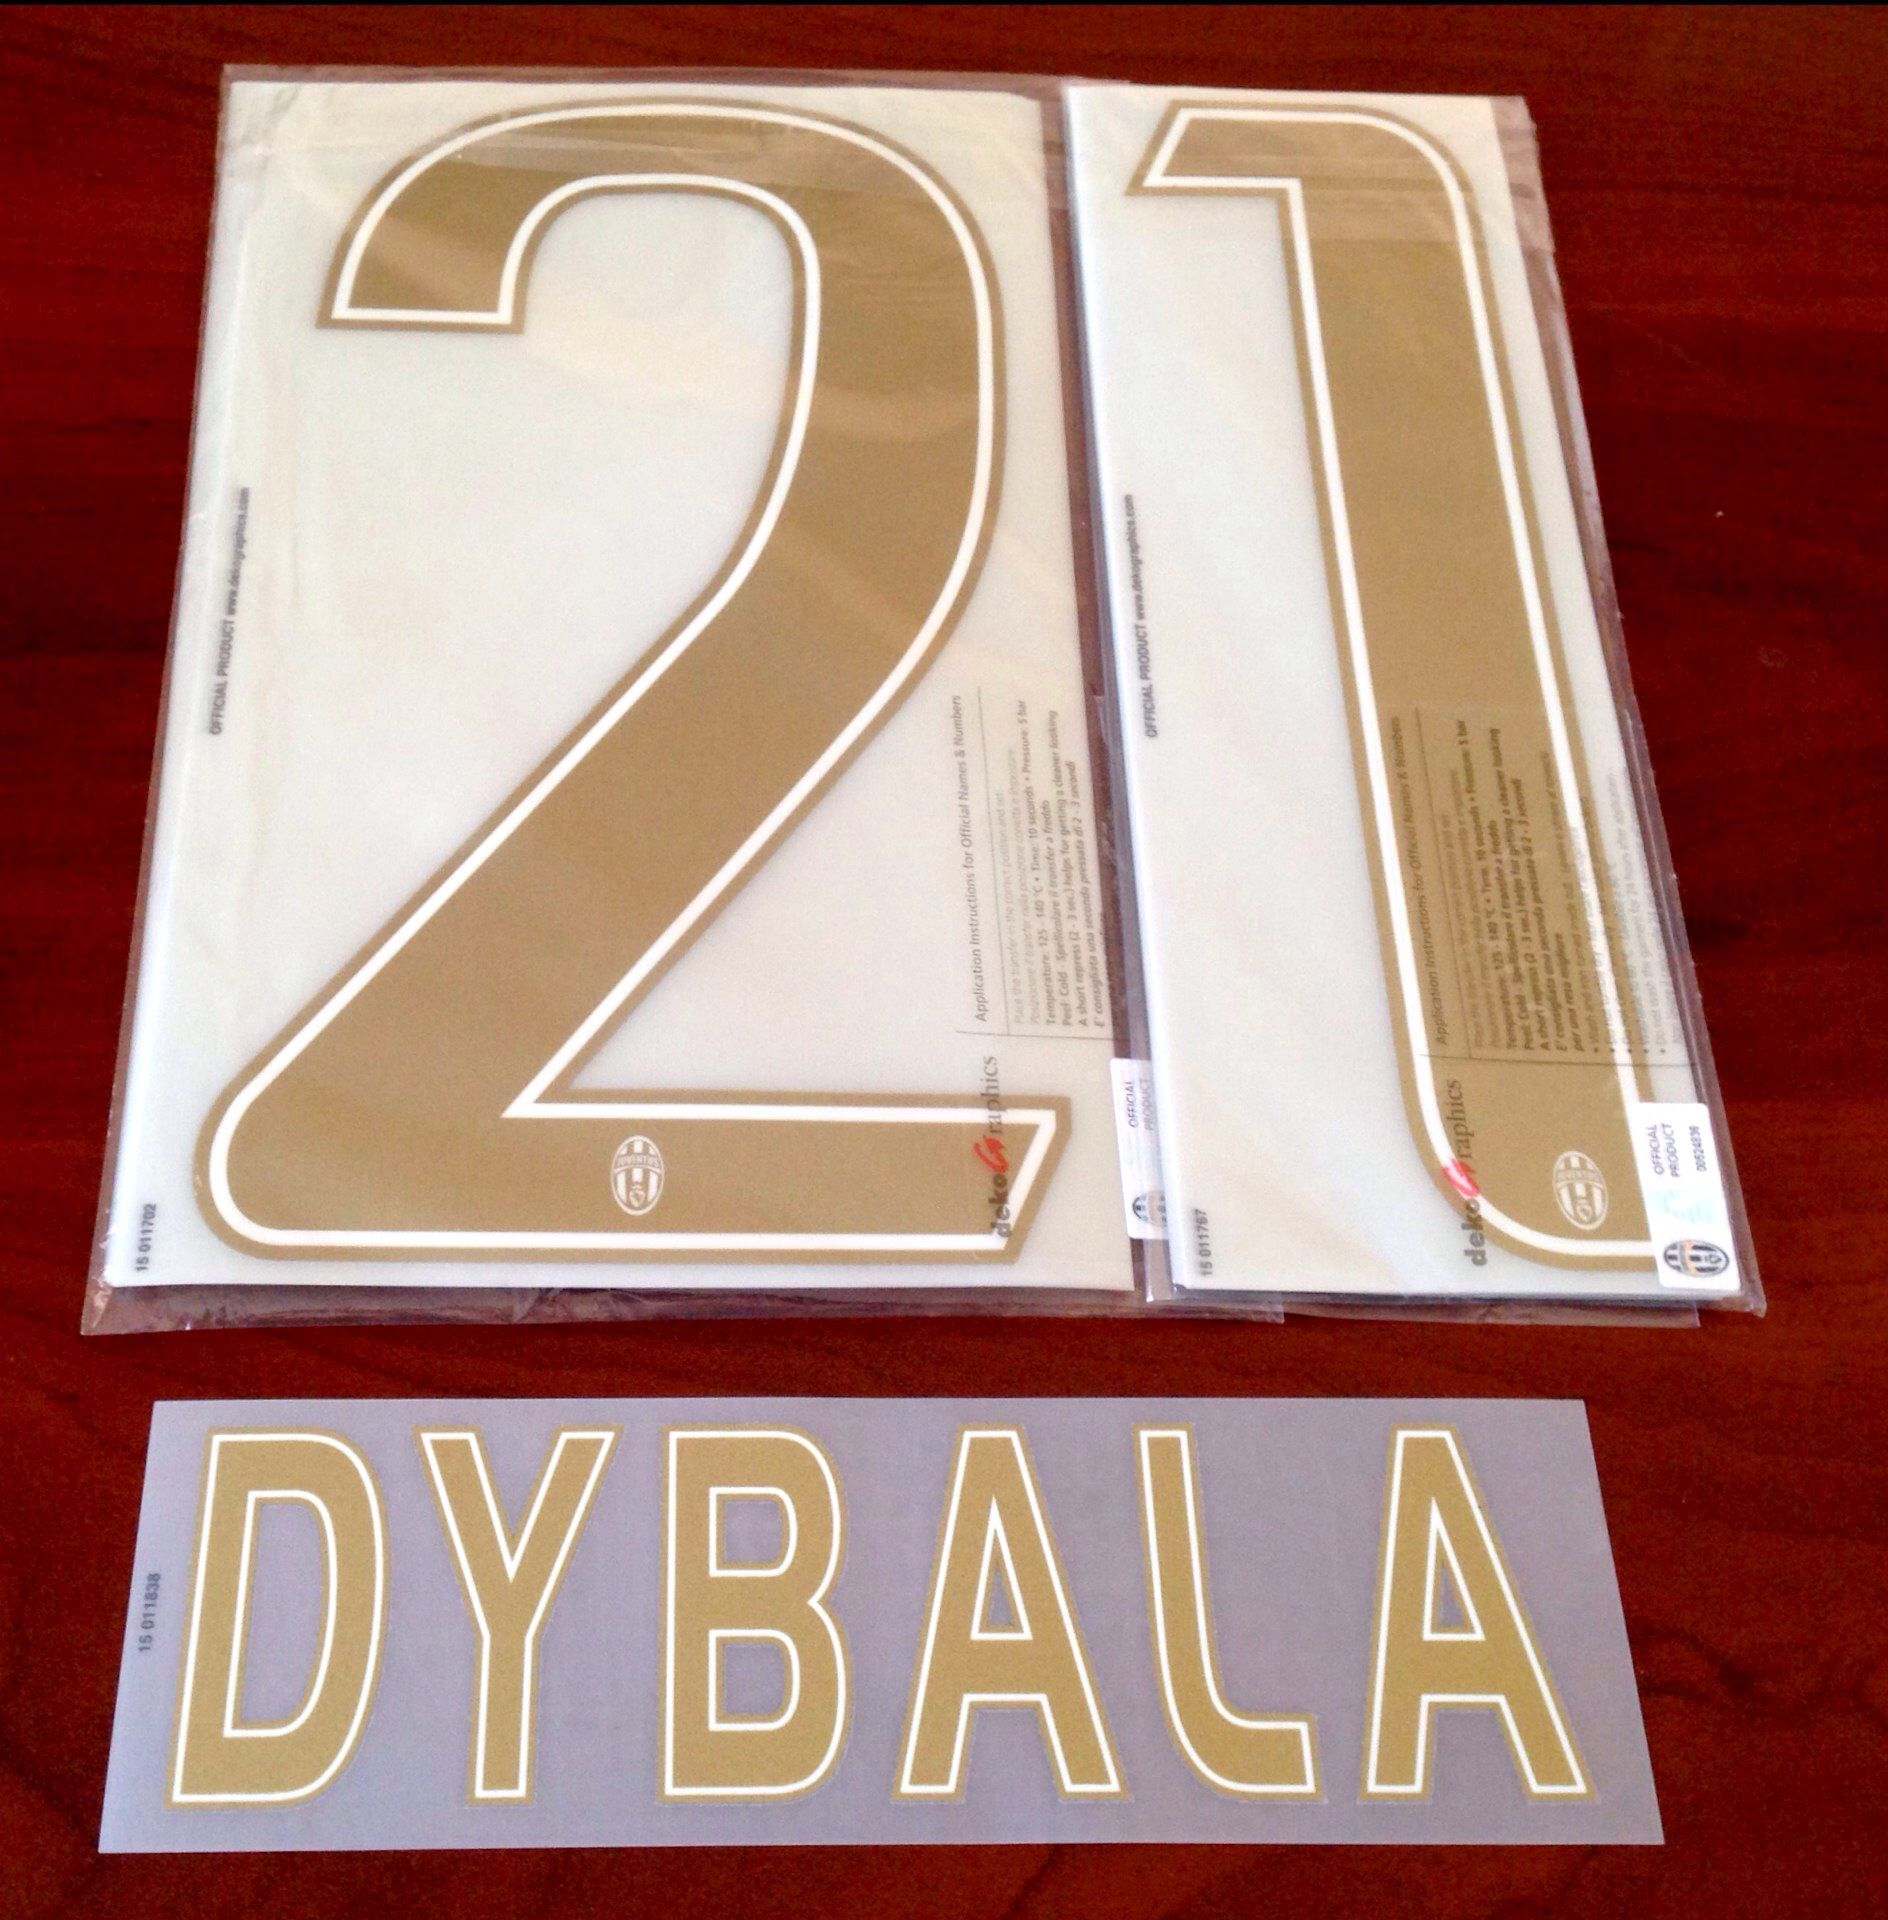 2015 16 Juventus DYBALA 21 UCL 3rd Away Shirt OFFICIAL DekoGraphics Name Number Set